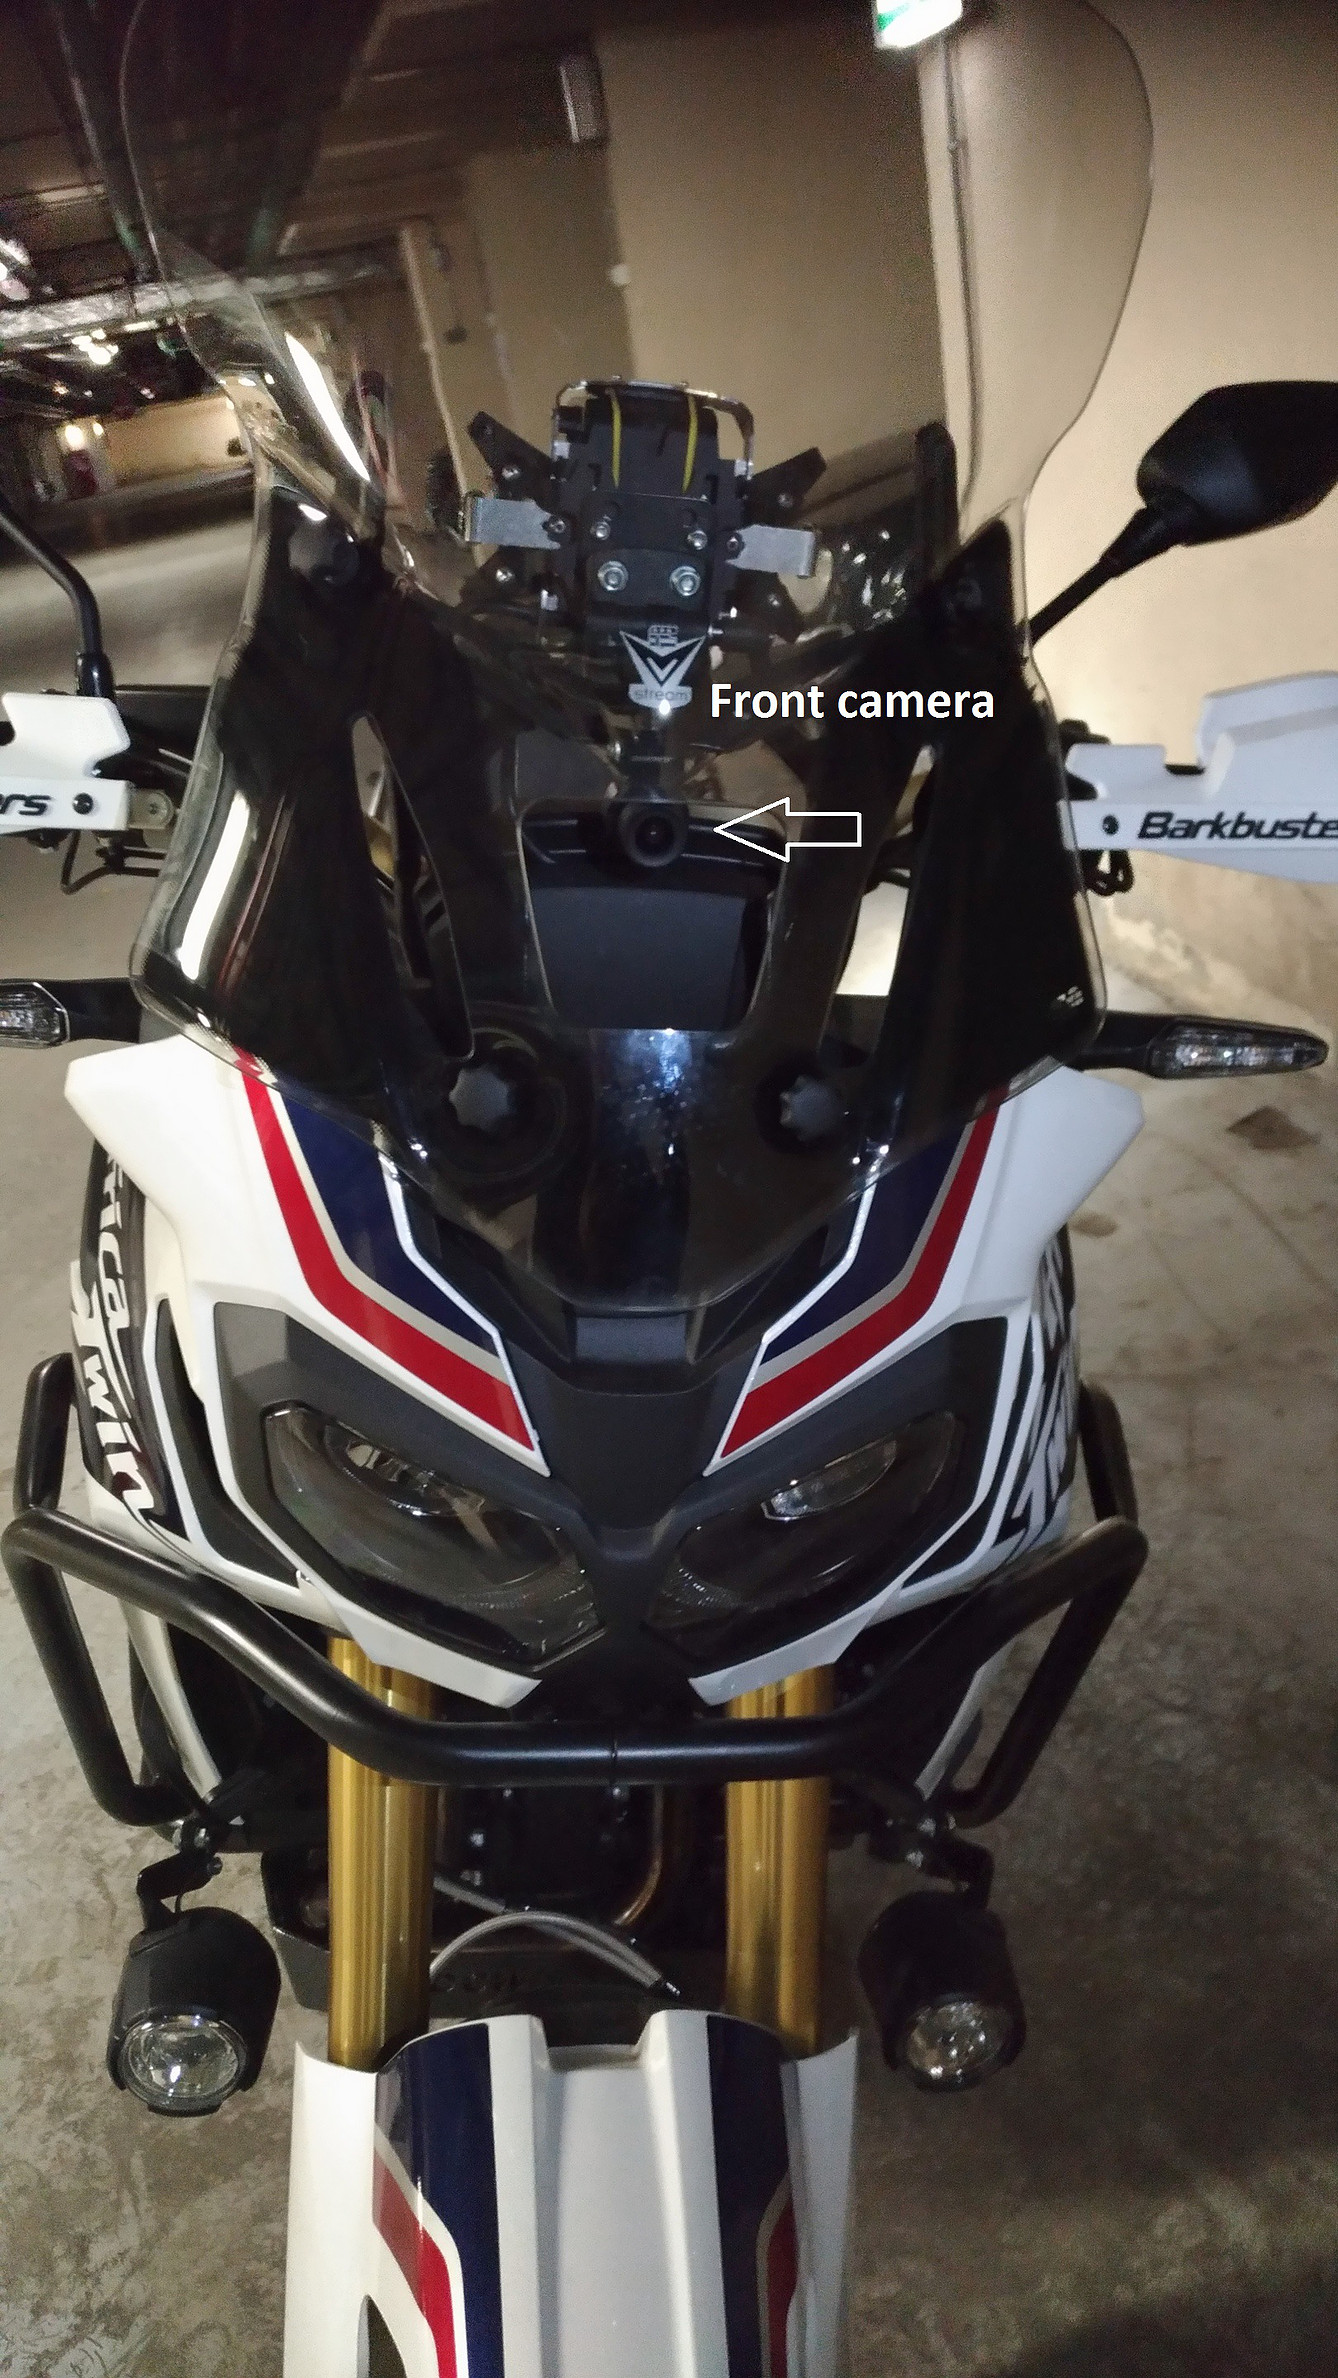 K2 installed on a Honda CRF1000D Africa Twin motorcycle